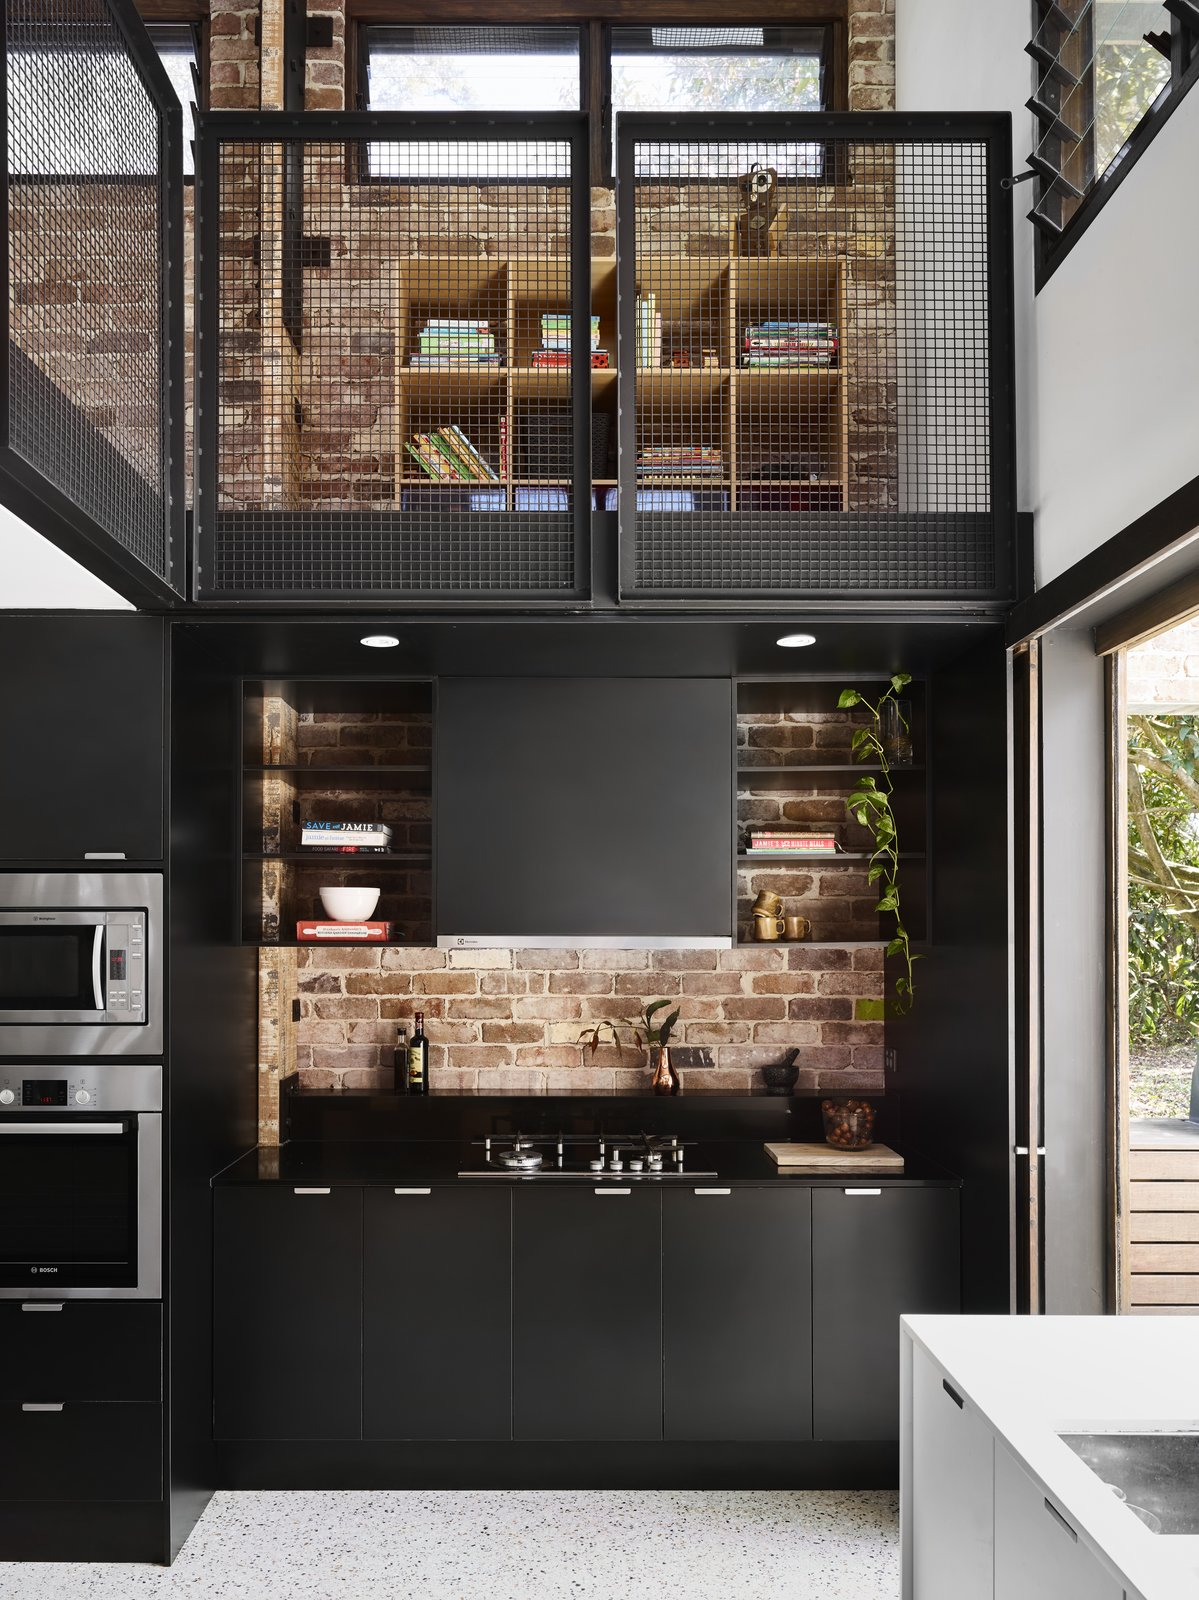 Kitchen, Engineered Quartz Counter, Terrazzo Floor, Granite Counter, Recessed Lighting, Brick Backsplashe, Microwave, Wall Oven, Cooktops, and Range Hood Here, a brick backsplash makes this black kitchen pop.   Photo 7 of 10 in Dwell's Top 10 Kitchens of 2017 from A Brisbane Architect Designs a Light-Filled Addition For Her Brother